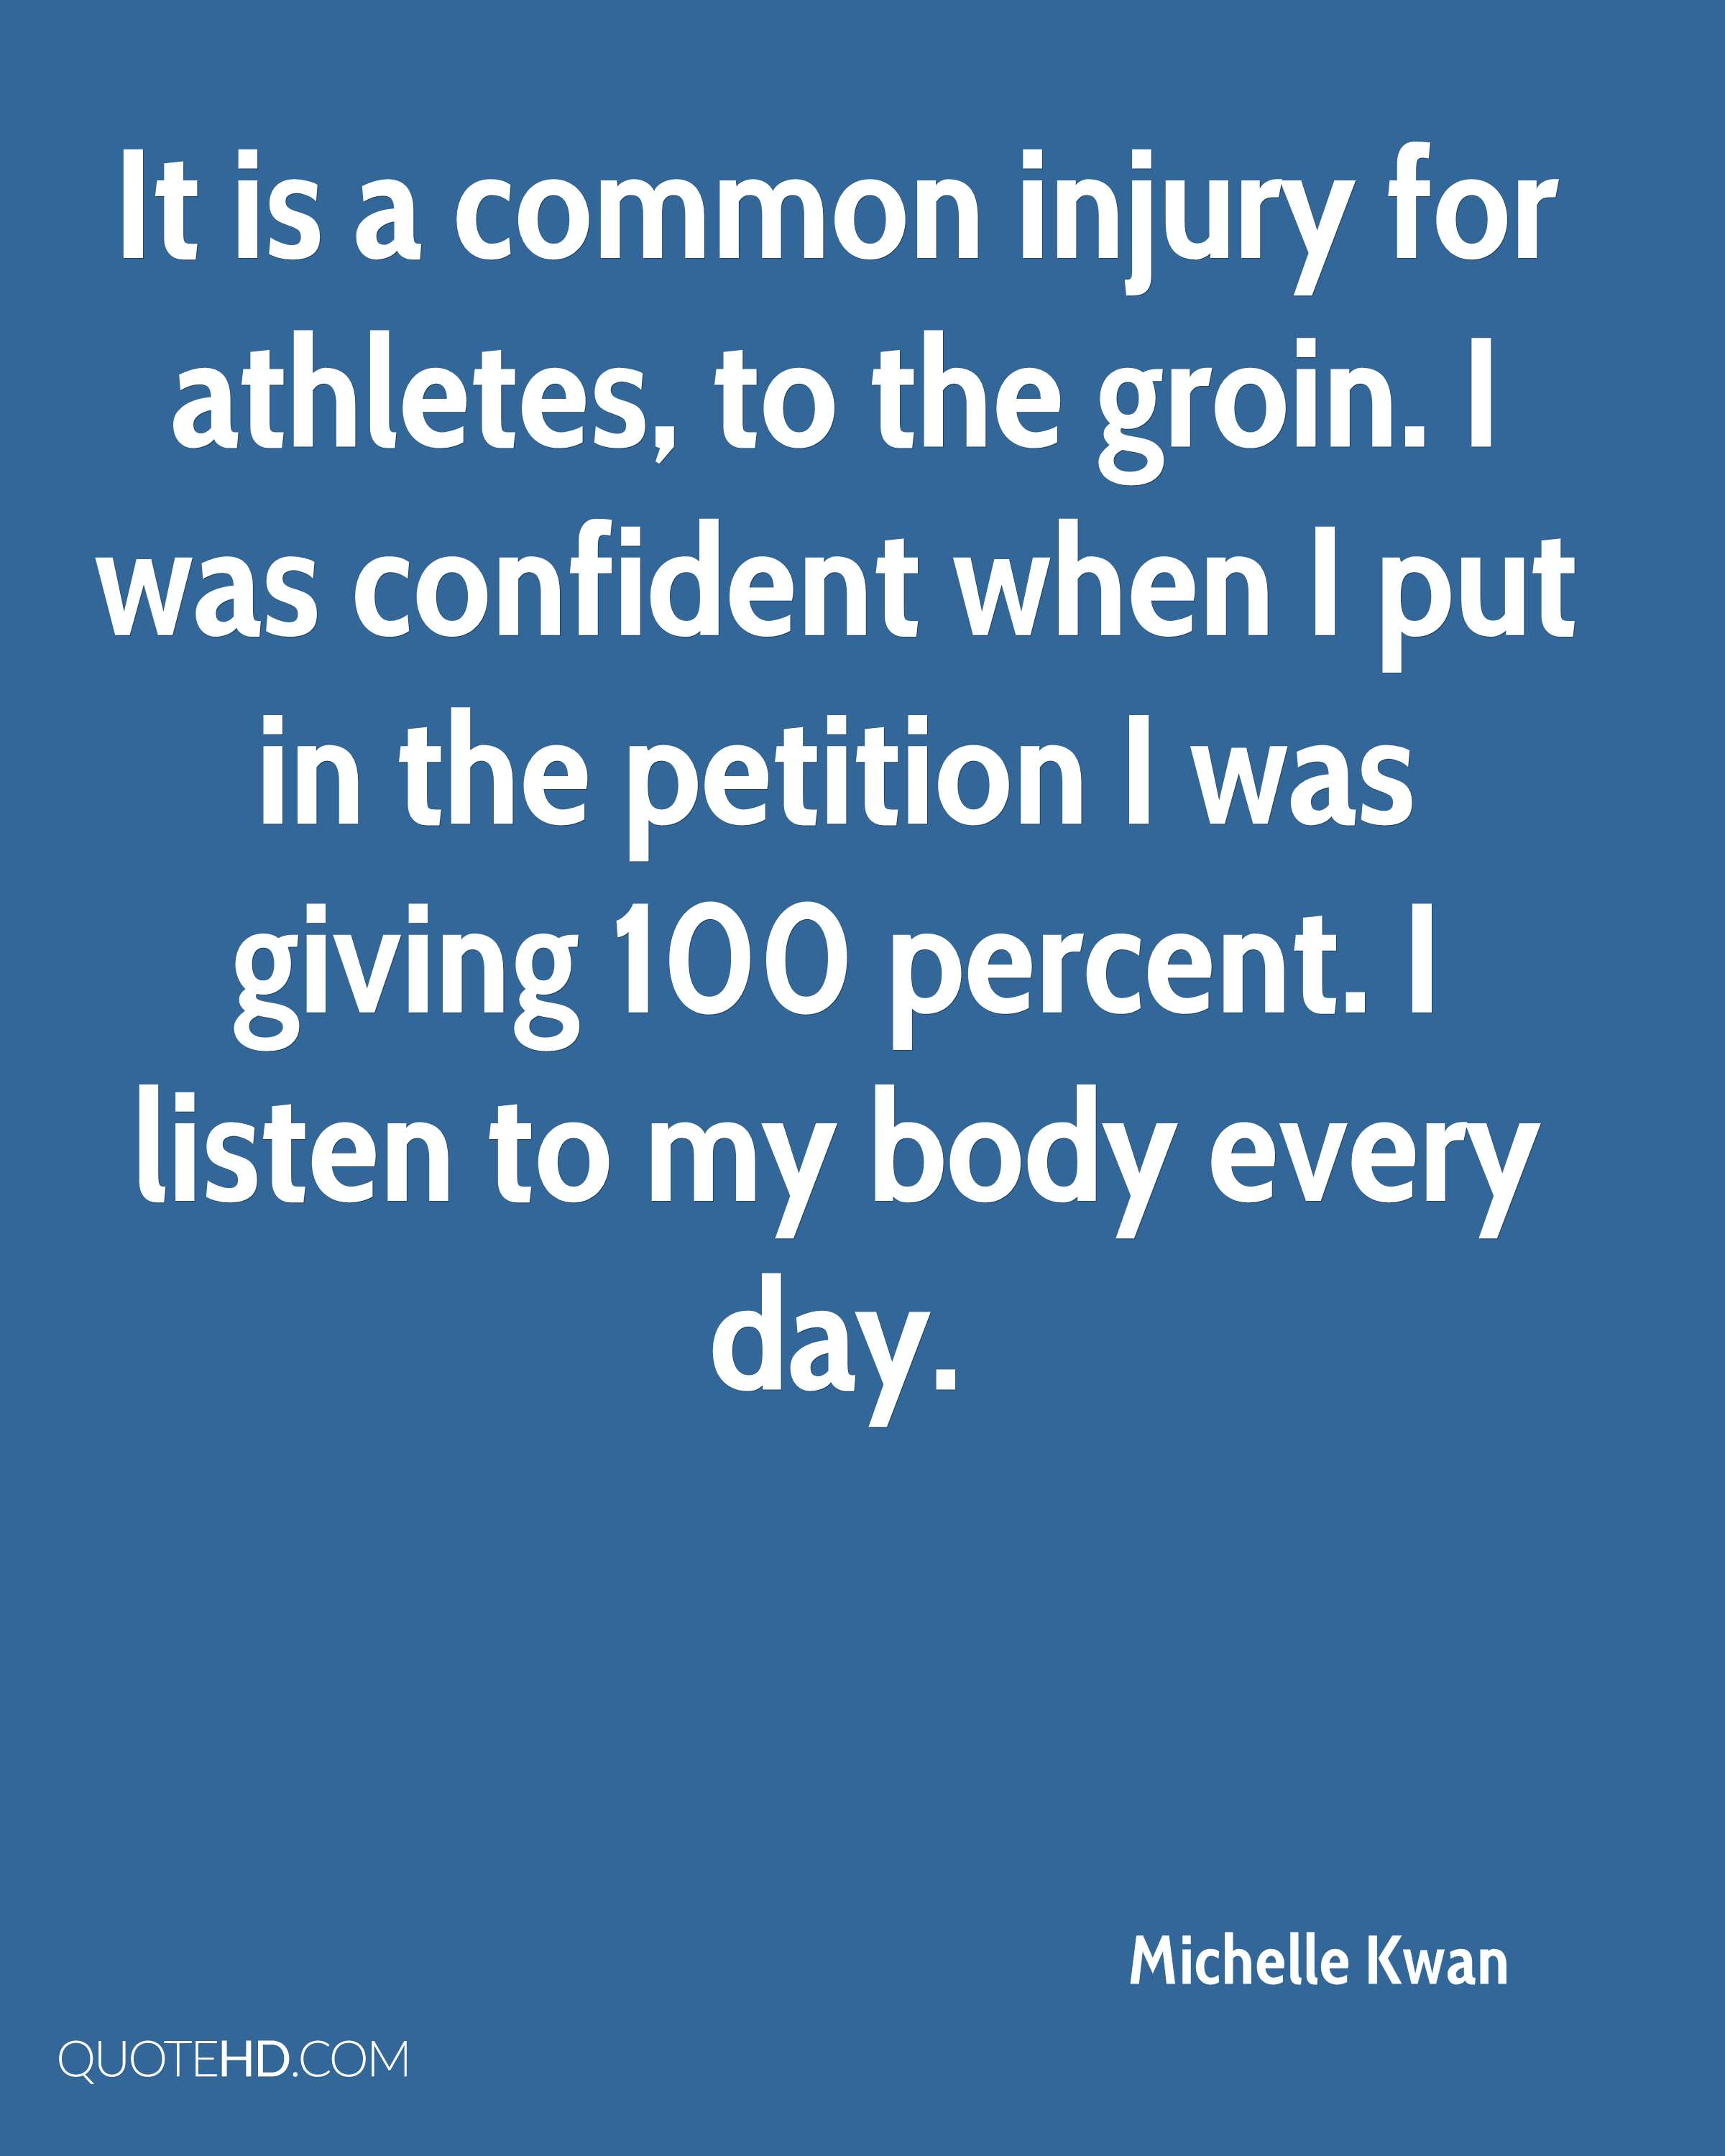 It is a common injury for athletes, to the groin. I was confident when I put in the petition I was giving 100 percent. I listen to my body every day.